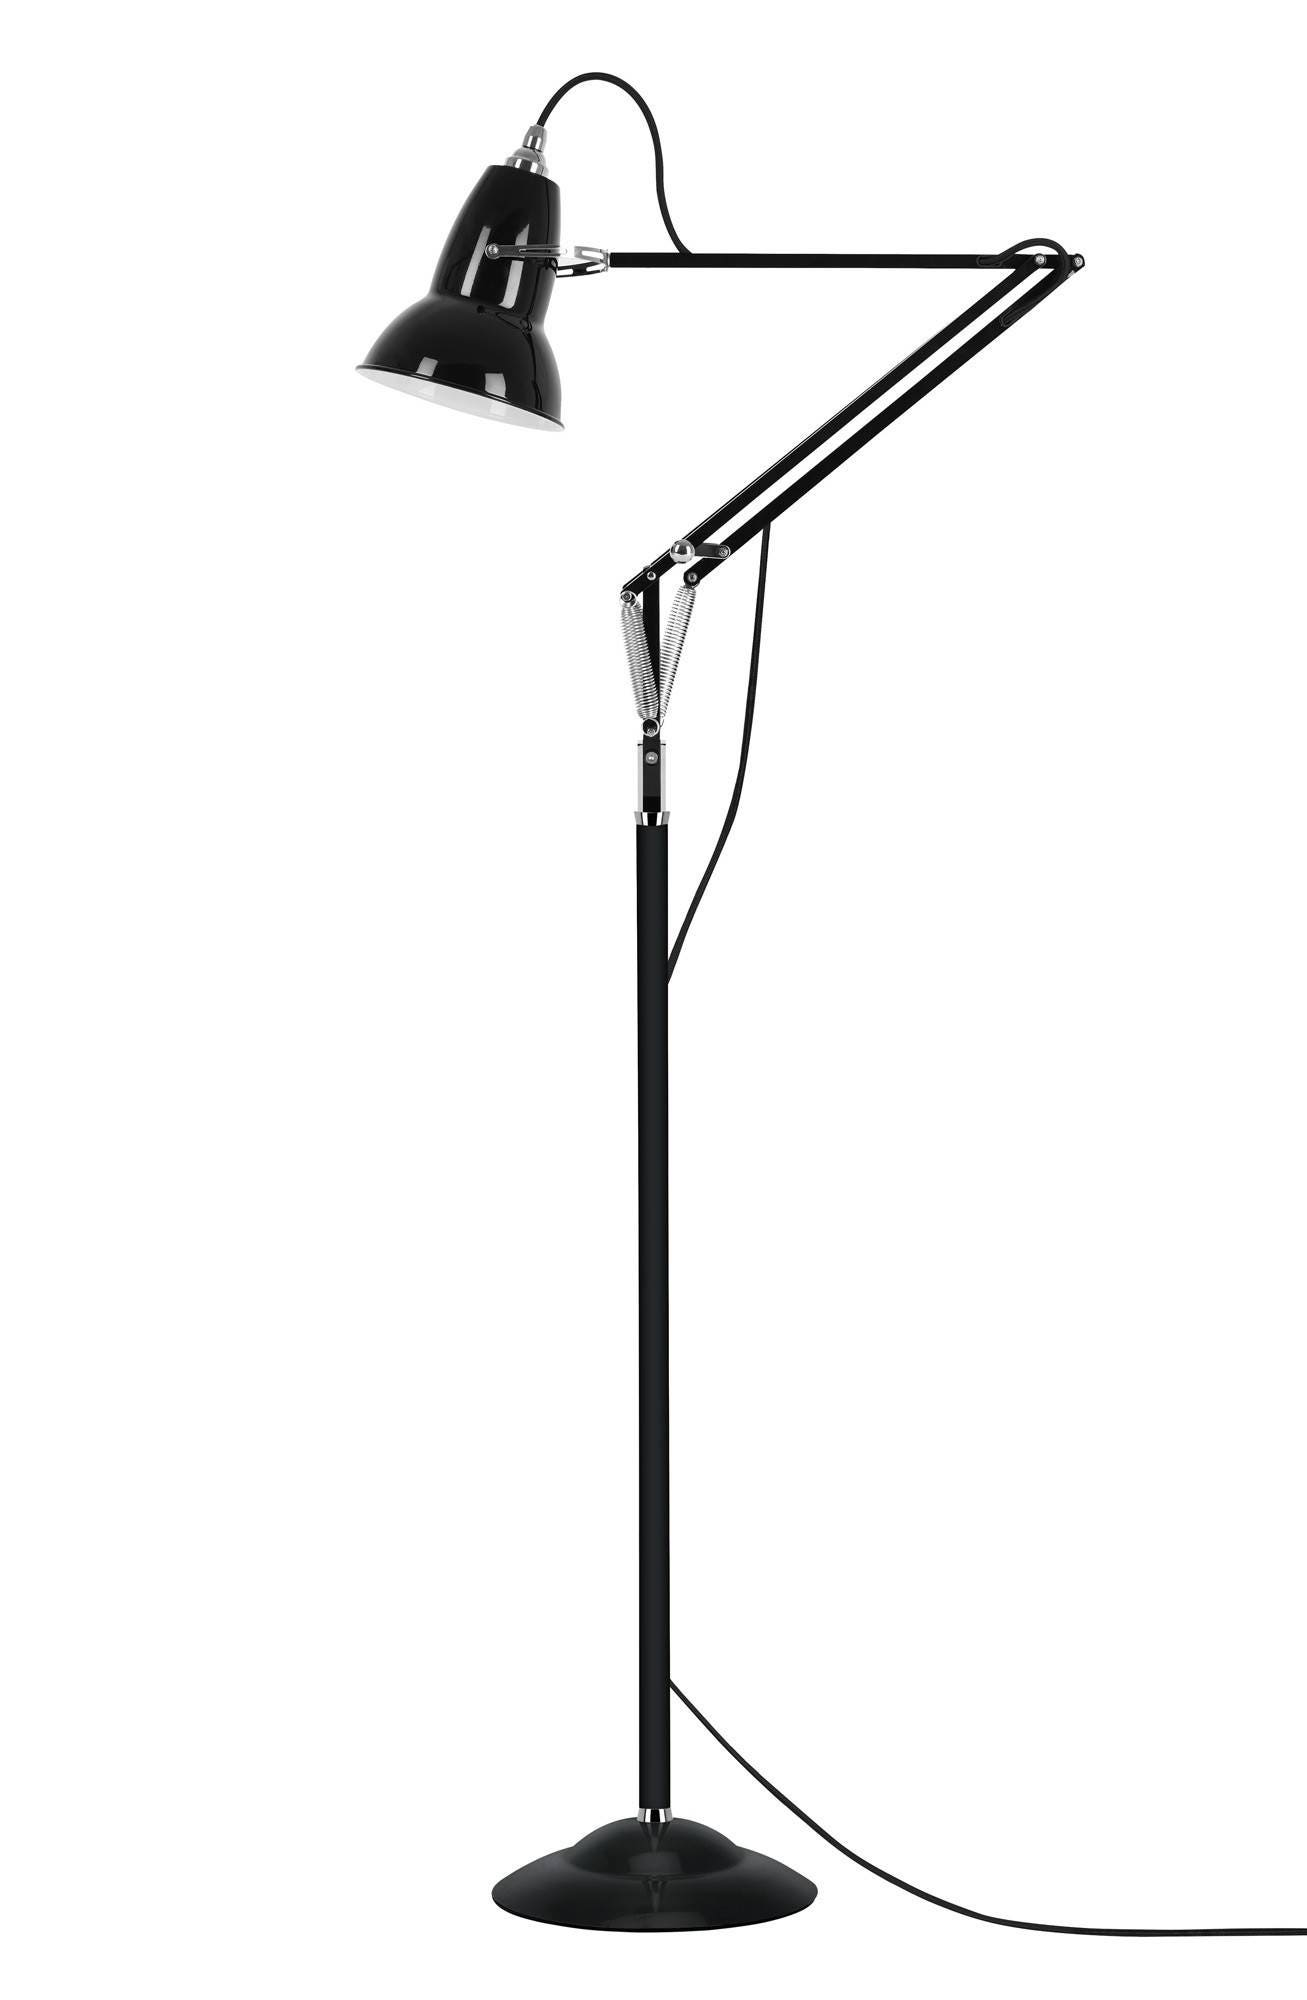 Anglepoise Original 1227 Floor Lamp